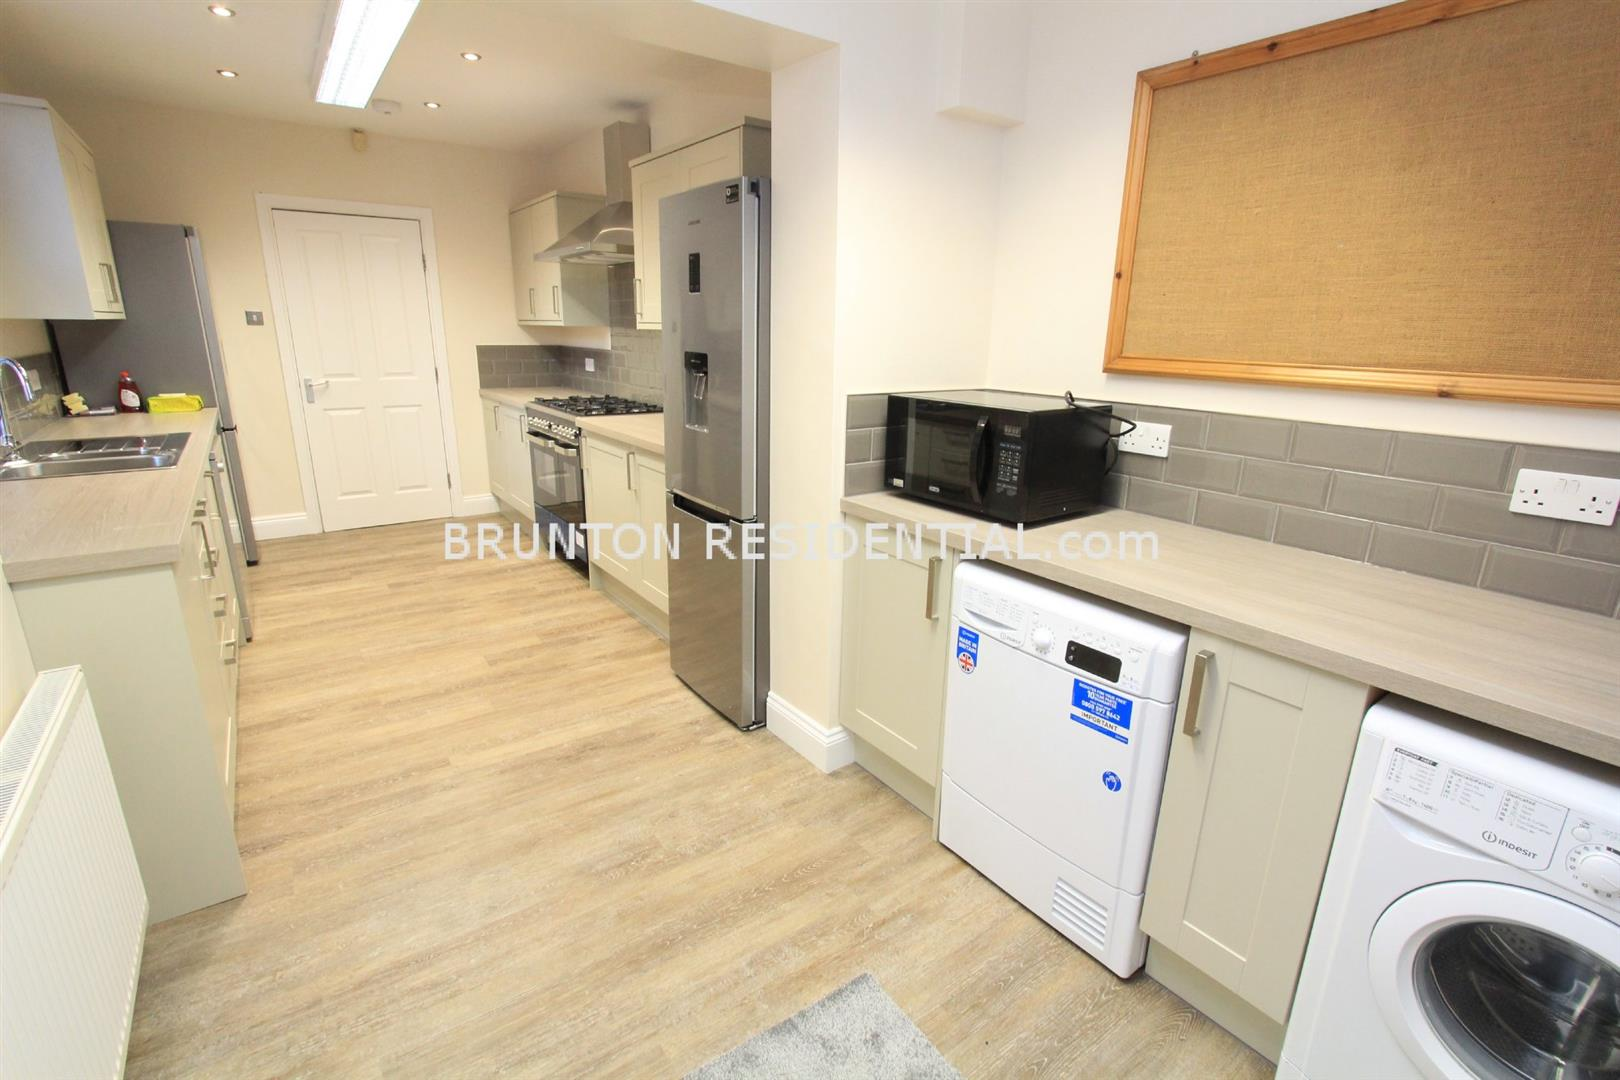 1 bed house share to rent in Newcastle Upon Tyne, NE6 5HU 6